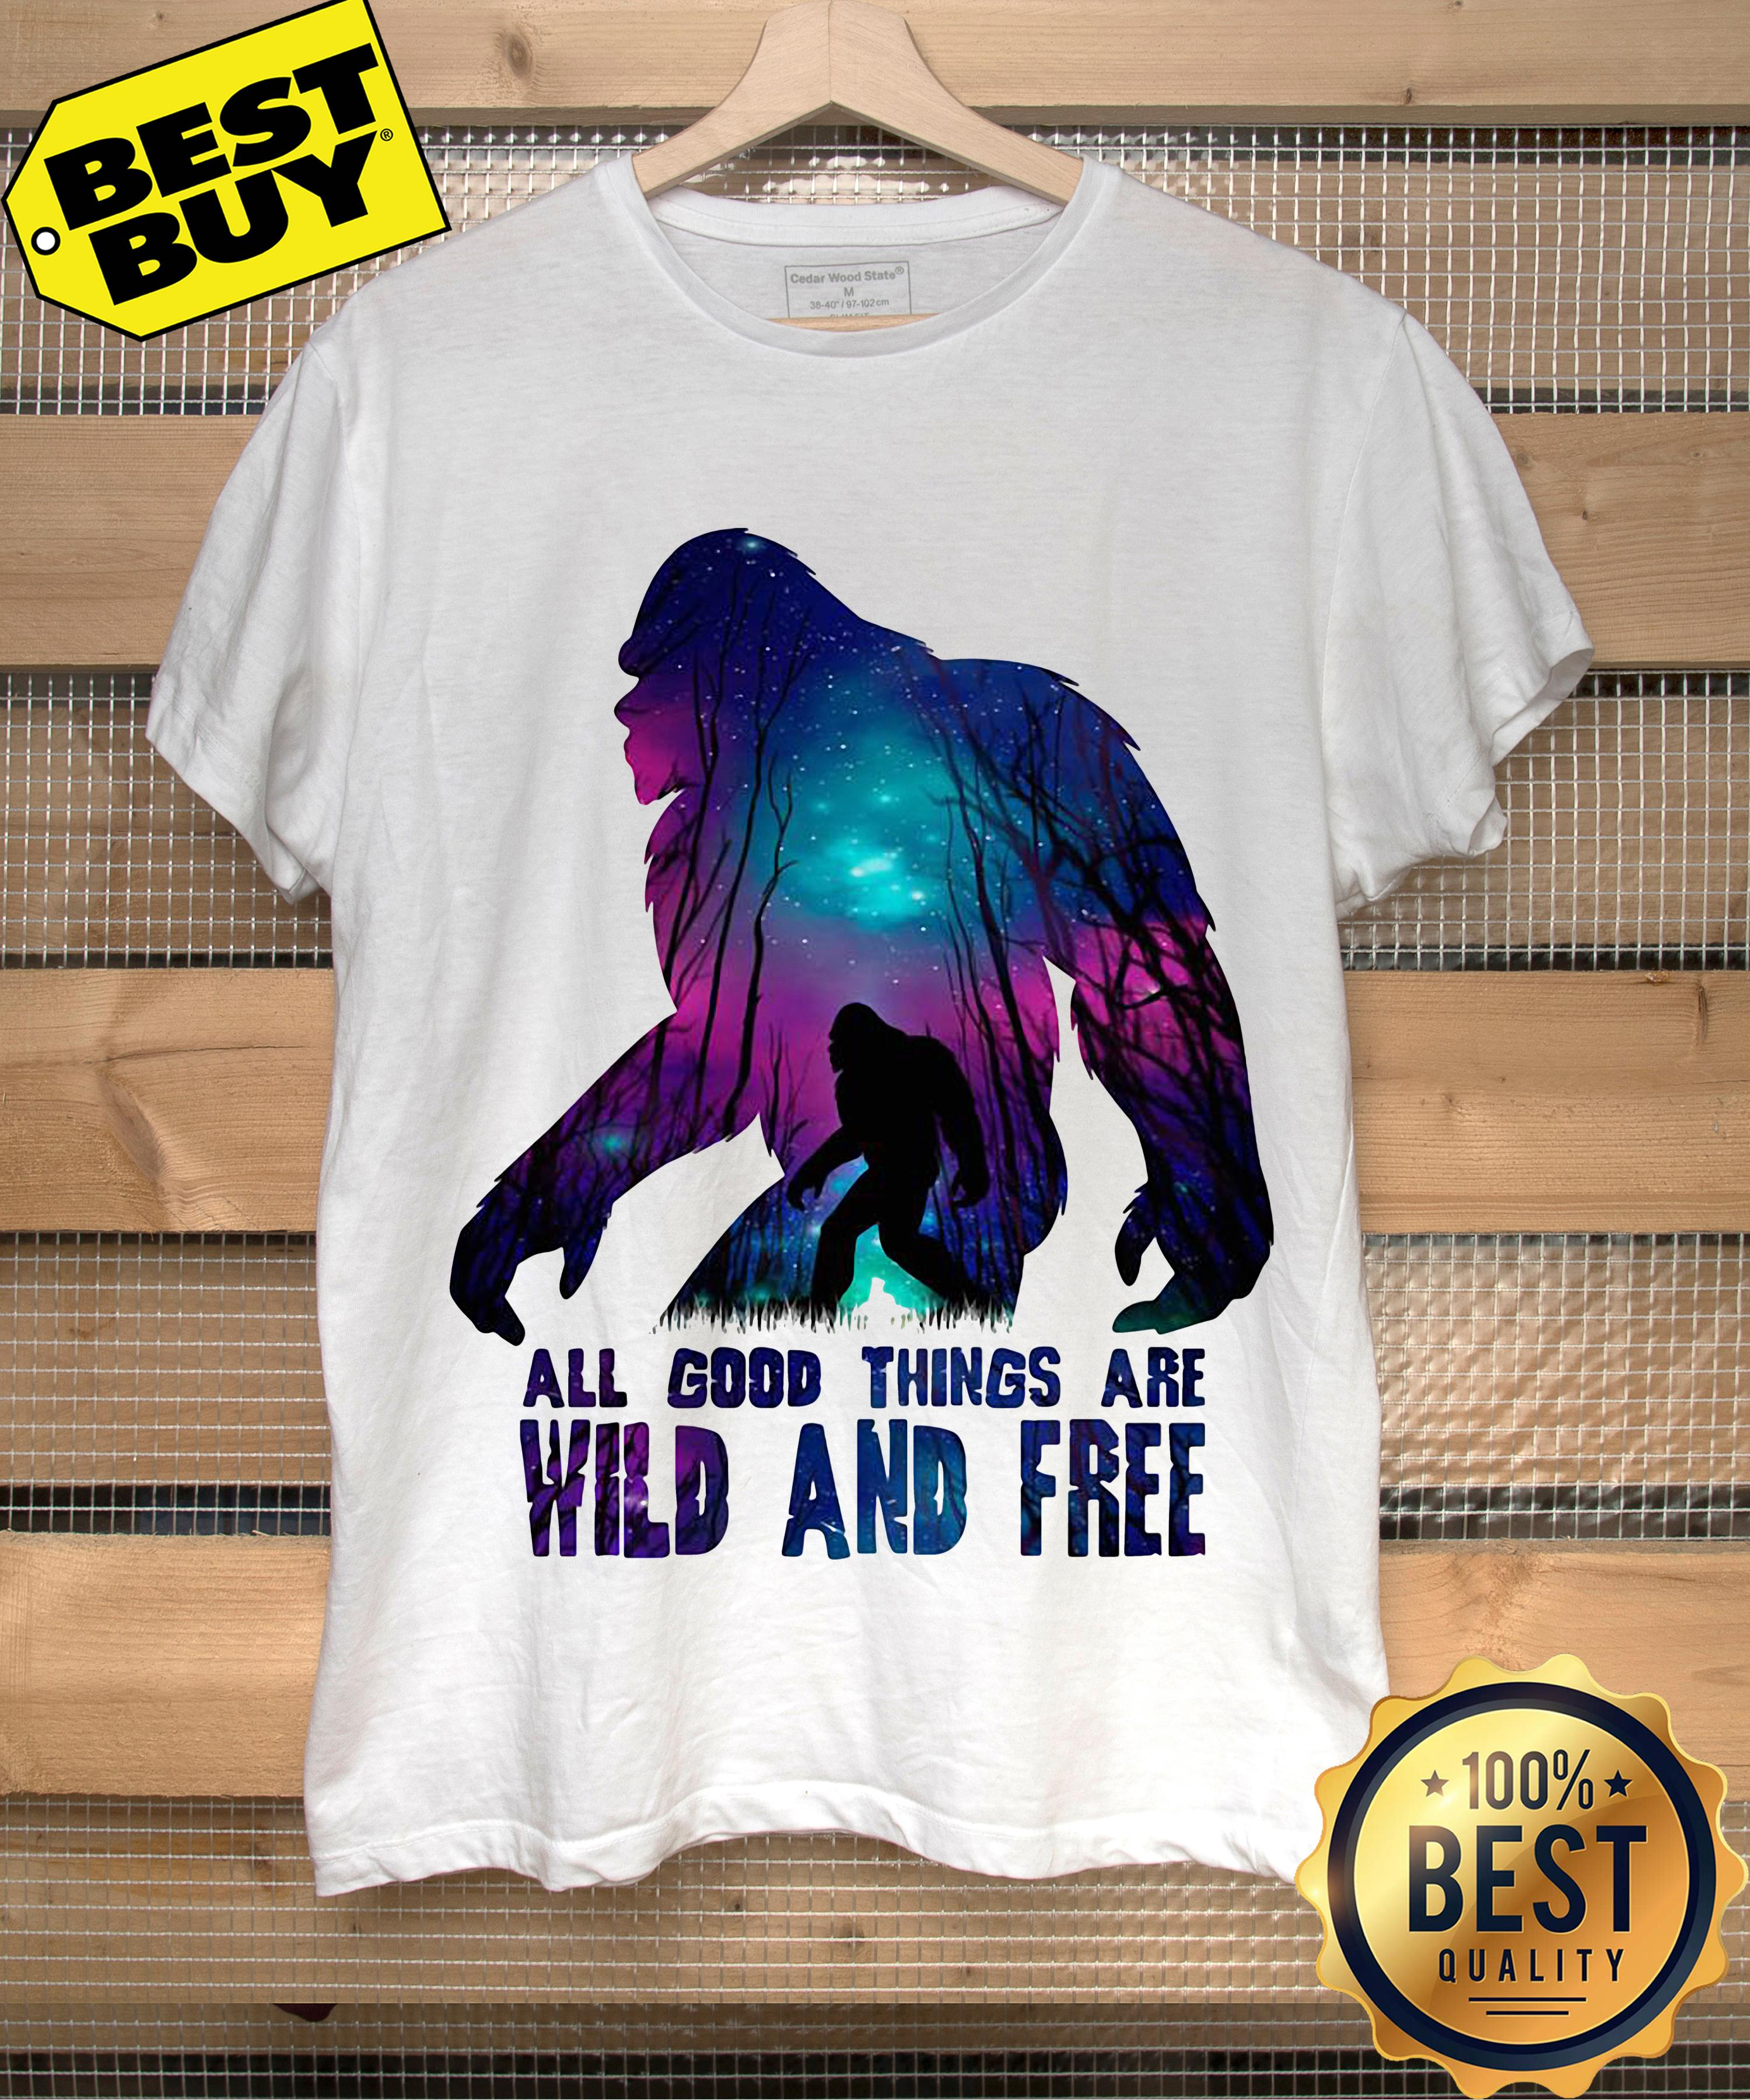 All good things wild and free ladies tee